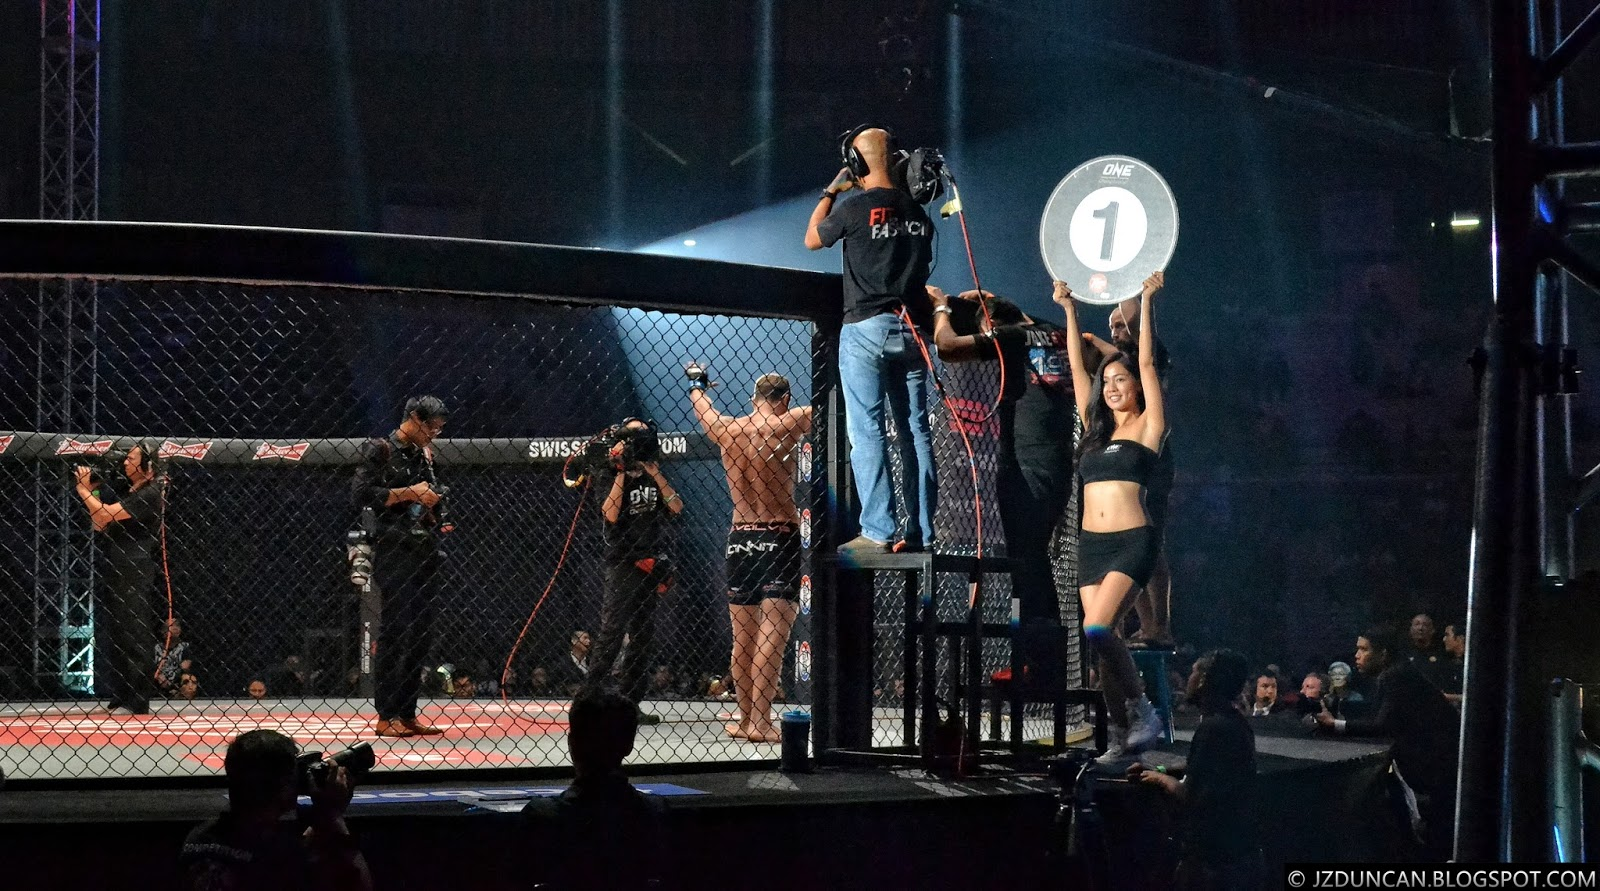 champion single christian girls Ring girls about us nguyen made a successful debut for one championship in 2014 christian lee, and veteran japanese champion kazunori yokota.